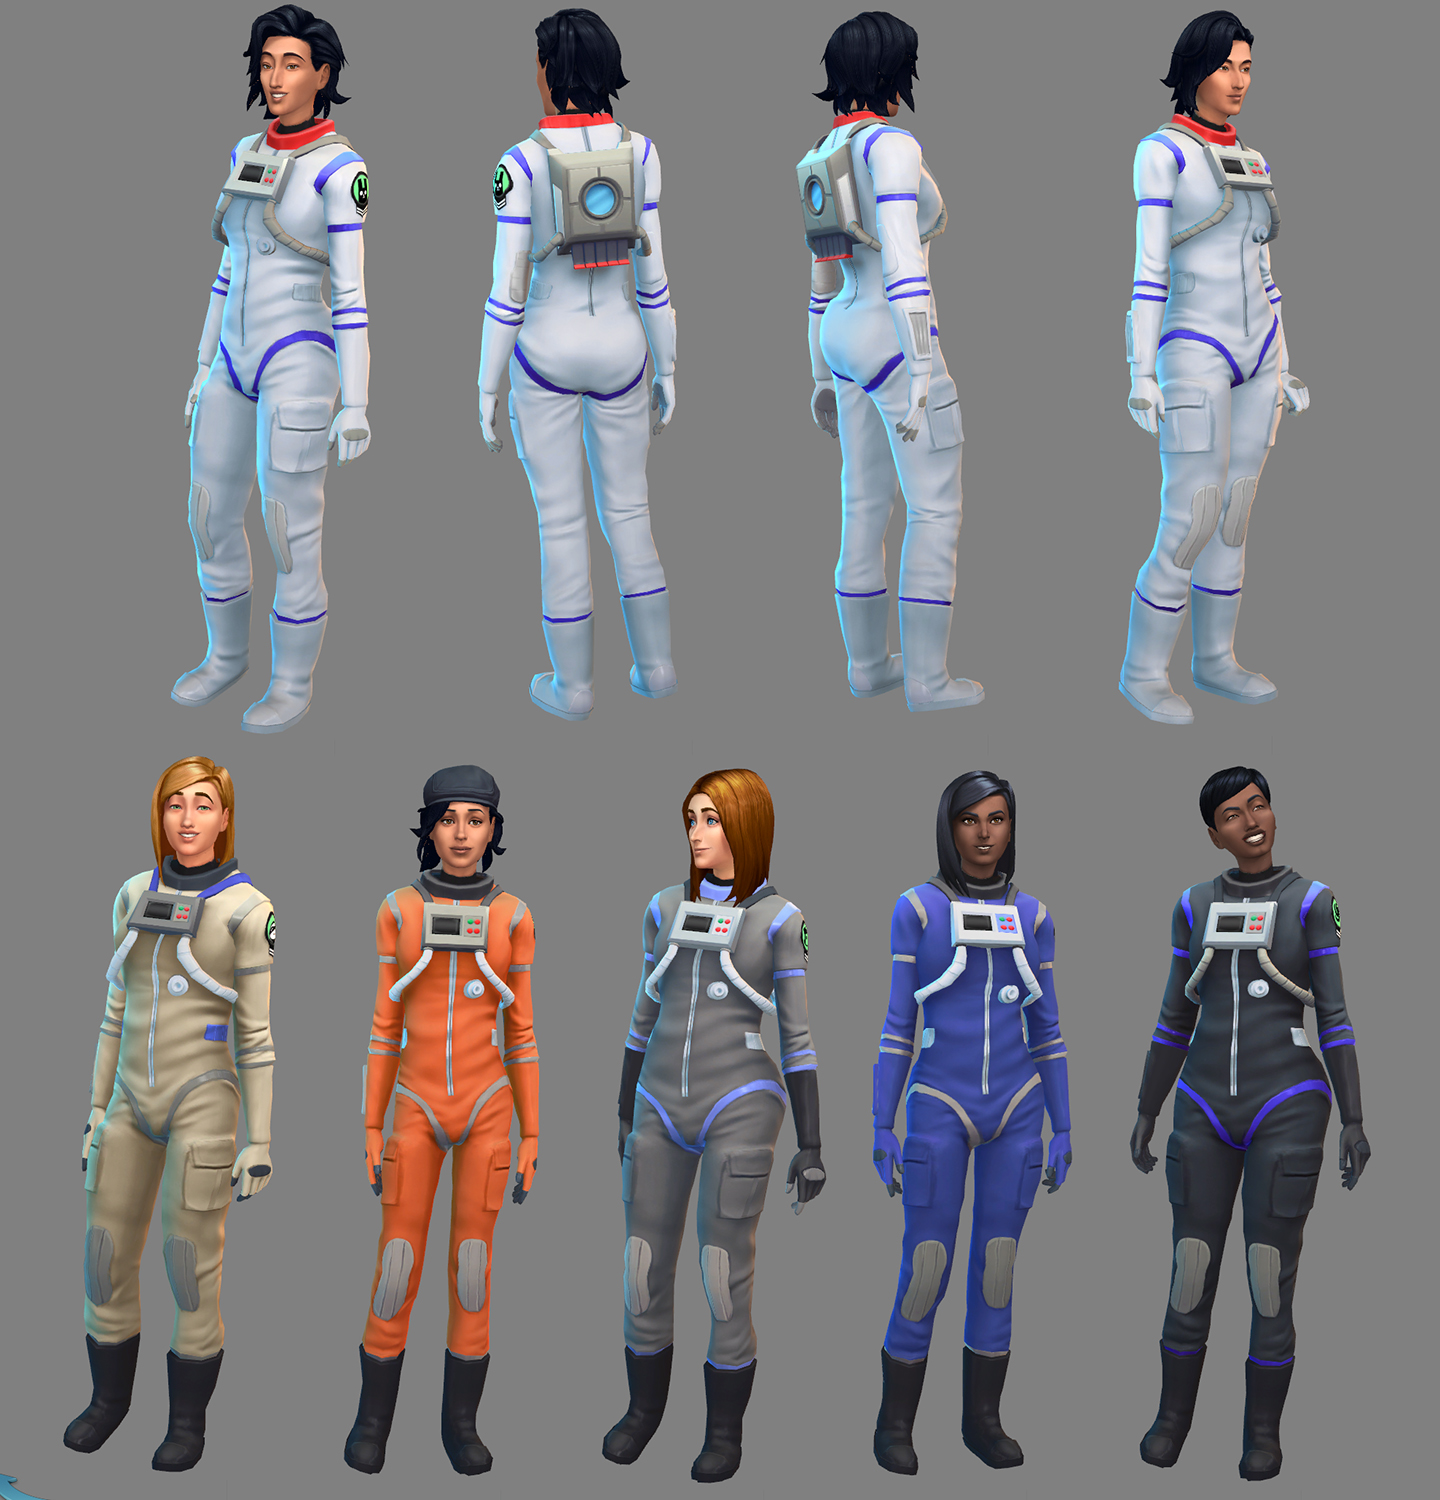 yfBody_SpaceSuit_review.jpg